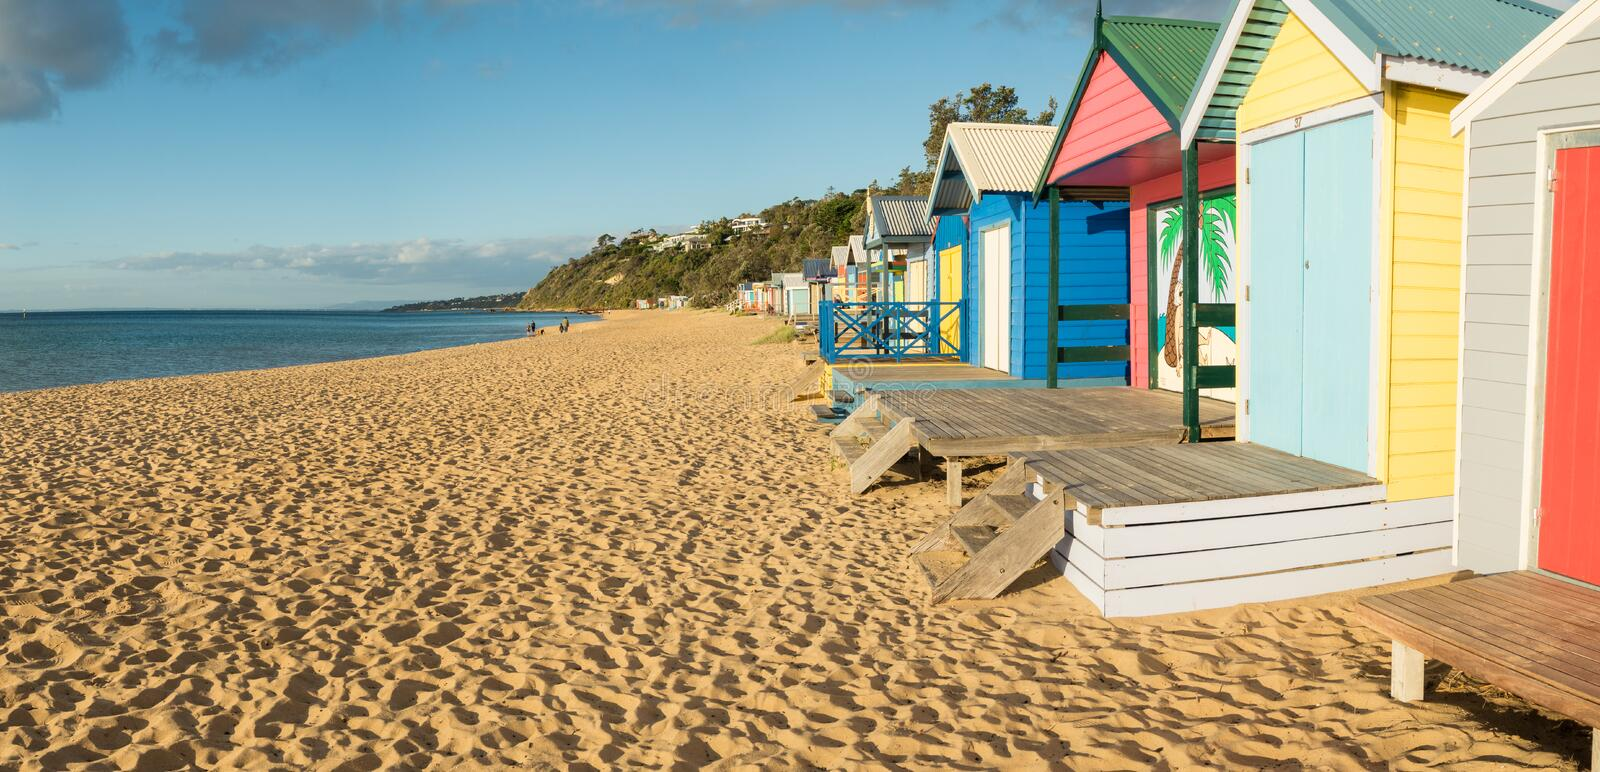 Scatole di bagno Colourful in Mornington sulla penisola di Mornington fotografie stock